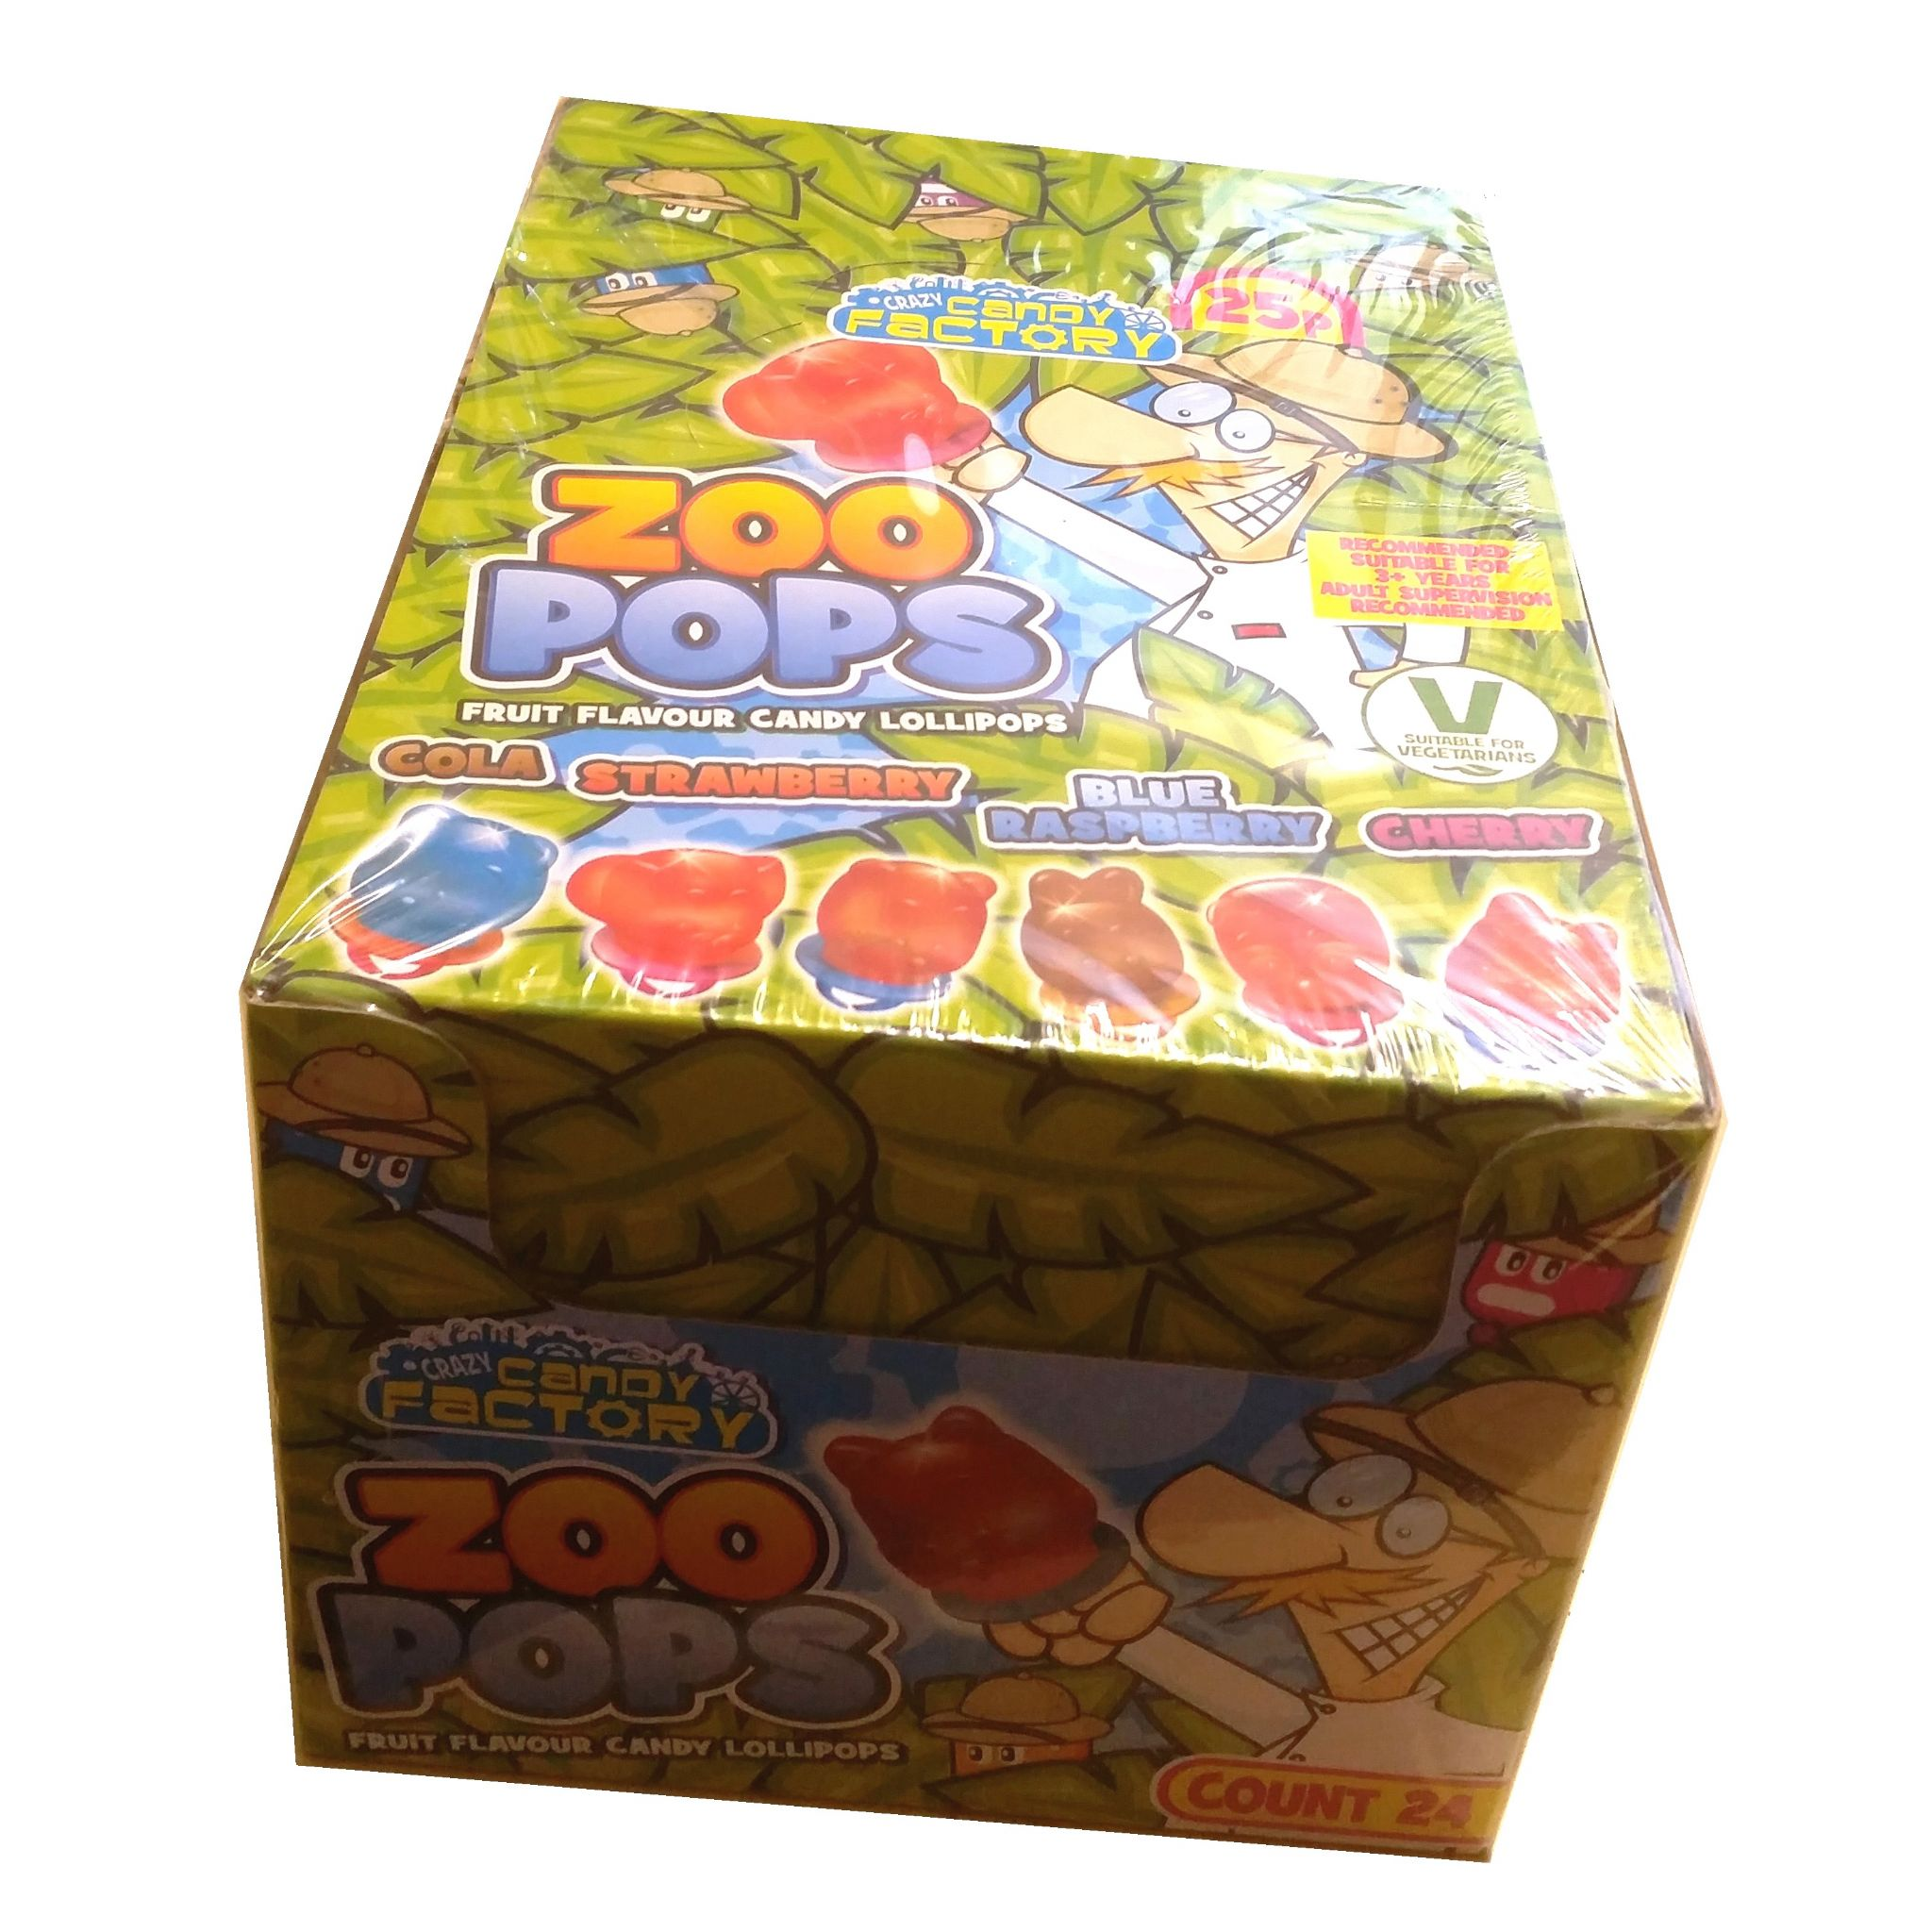 24 x Zoo Pops Mini Lolly Sweets Lollies With Rings - Crazy